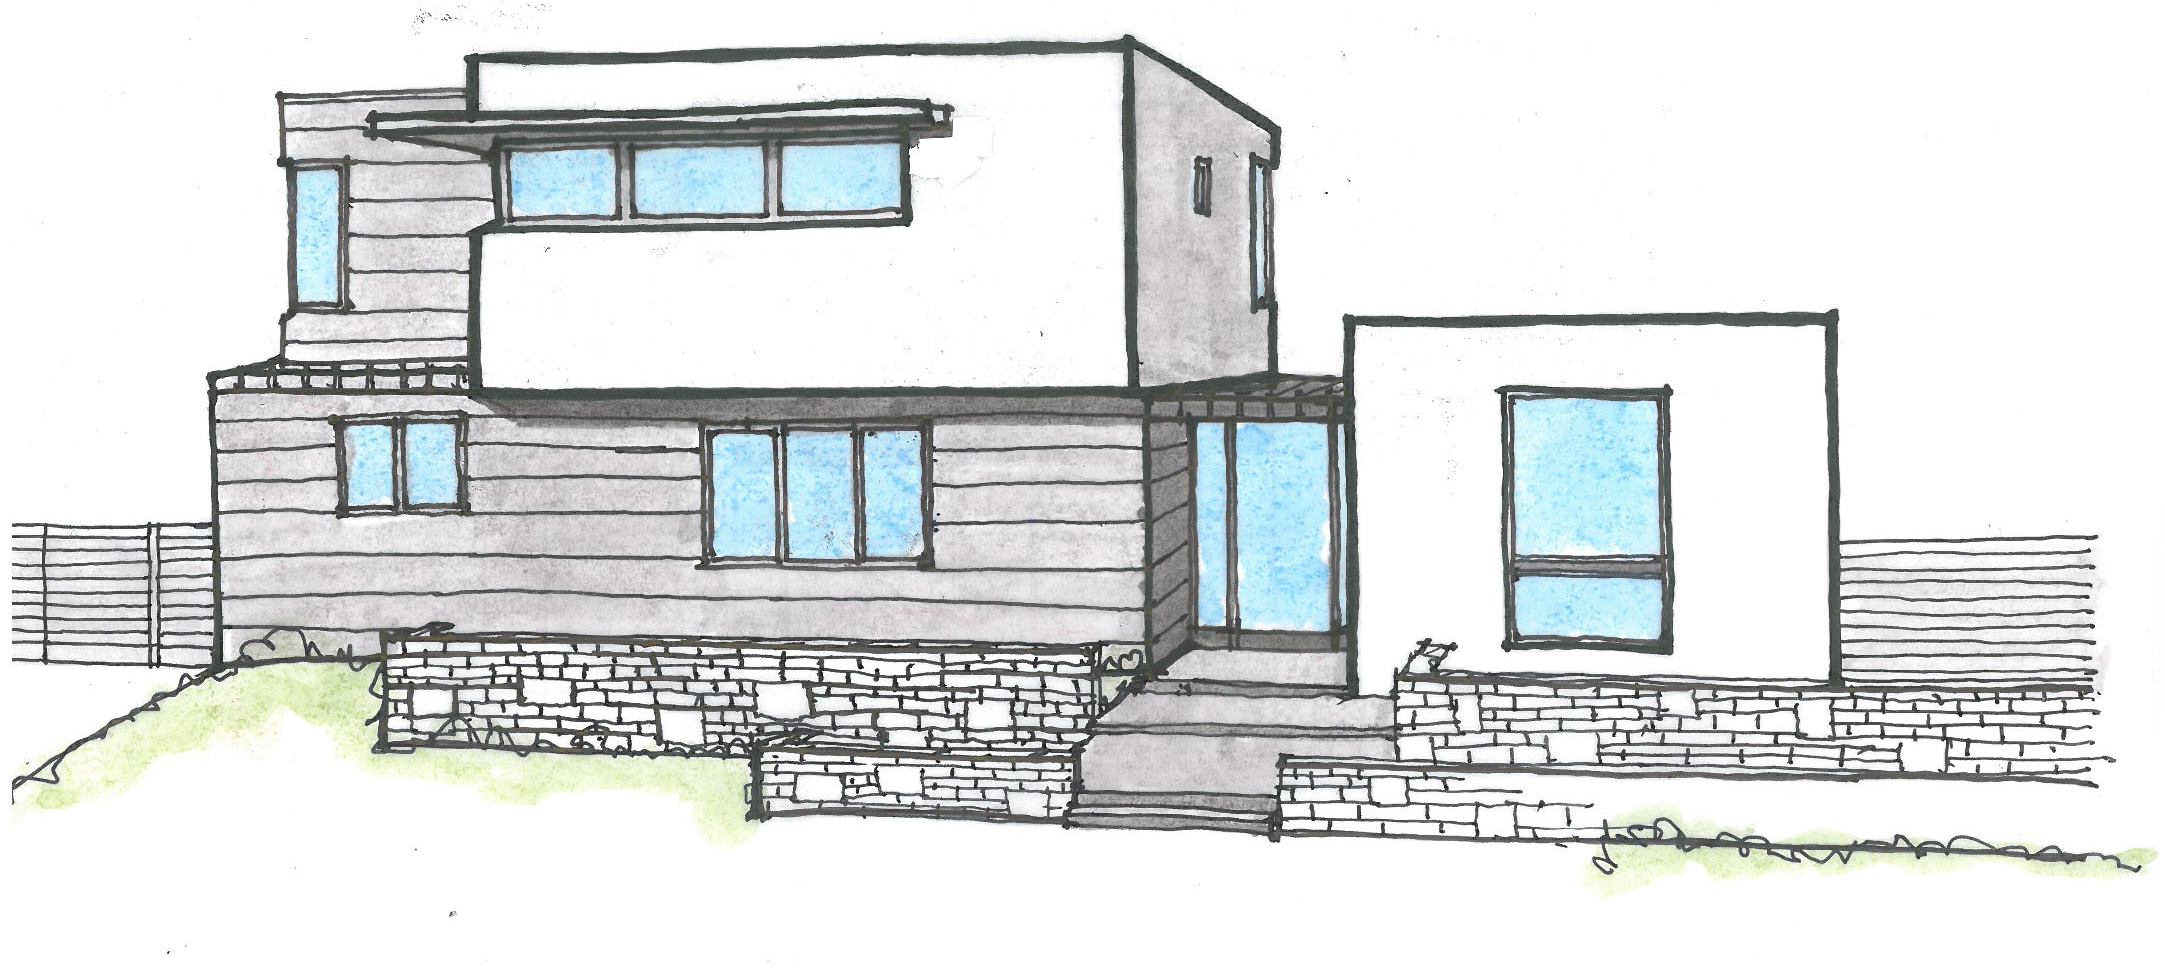 House architecture drawing at free for for Architectural drawings of houses